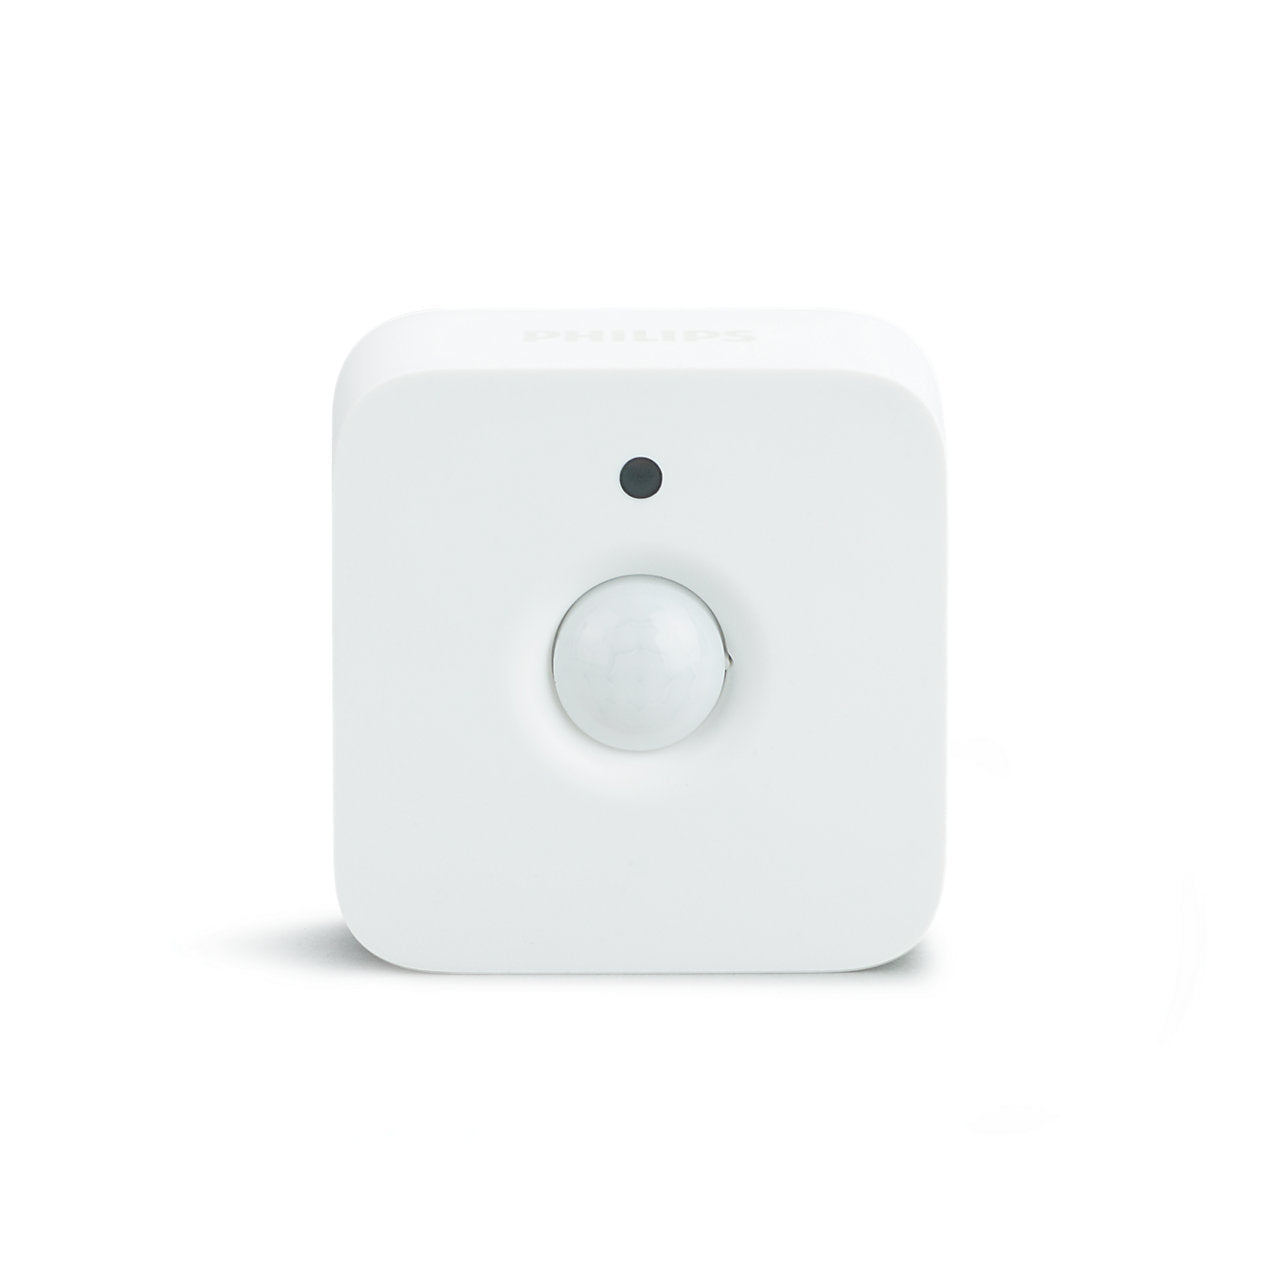 HUE INDOOR WIRELESS MOTION SENSOR - Philips